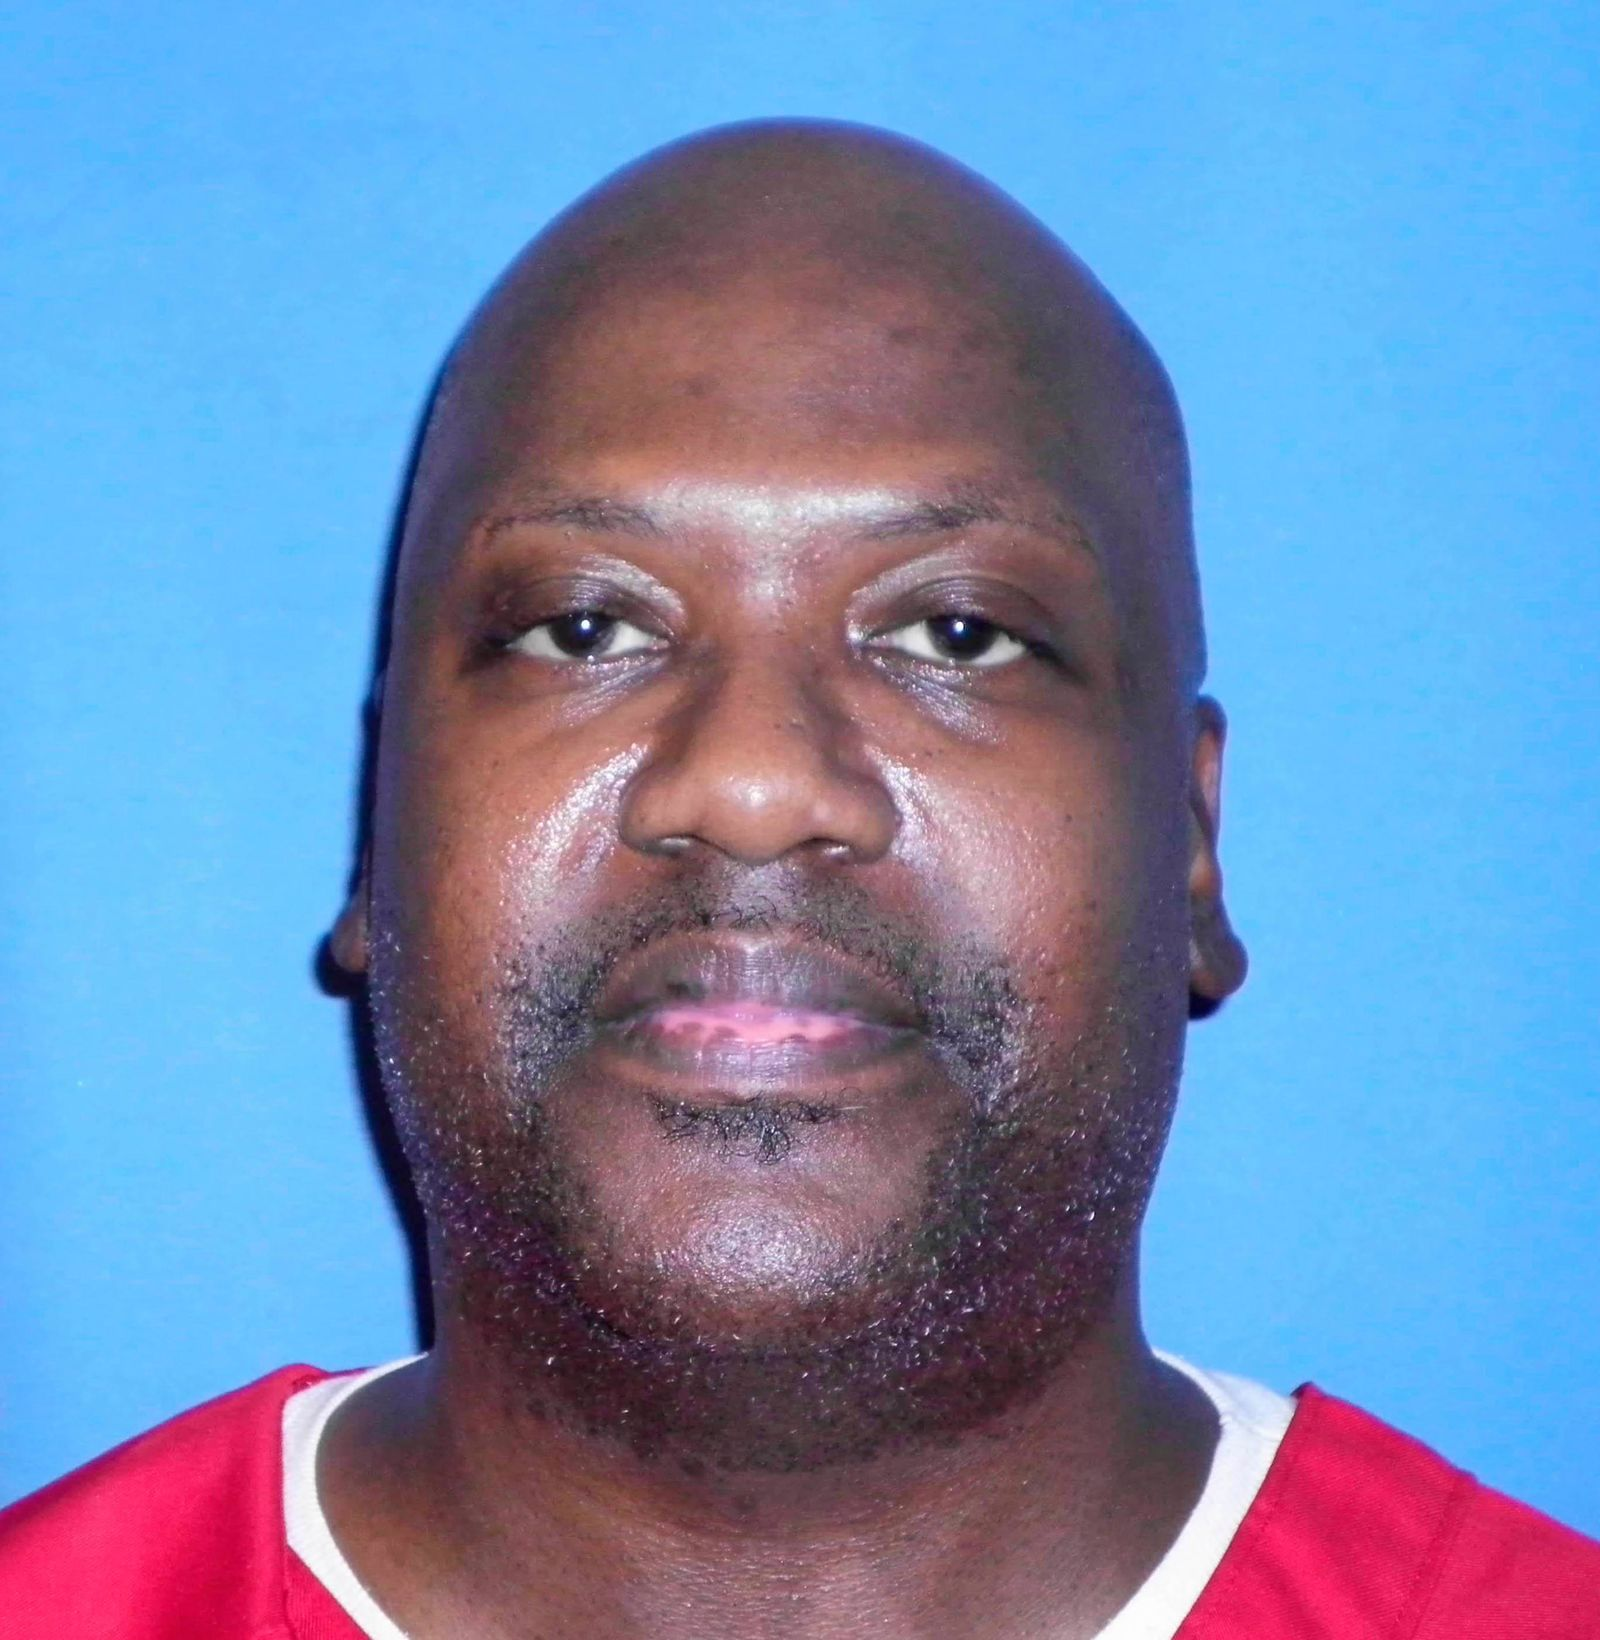 This Aug. 3, 2017 photo provided by Mississippi Department of Corrections shows Curtis Flowers, who's murder case has gone to trial six times. The Supreme Court is throwing out the murder conviction and death sentence for Flowers because of a prosecutor's efforts to keep African Americans off the jury. The defendant already has been tried six times and now could face a seventh trial.  The court's 7-2 decision Friday says the removal of black prospective jurors violated the rights of inmate Curtis Flowers.(Mississippi Department of Corrections via AP)